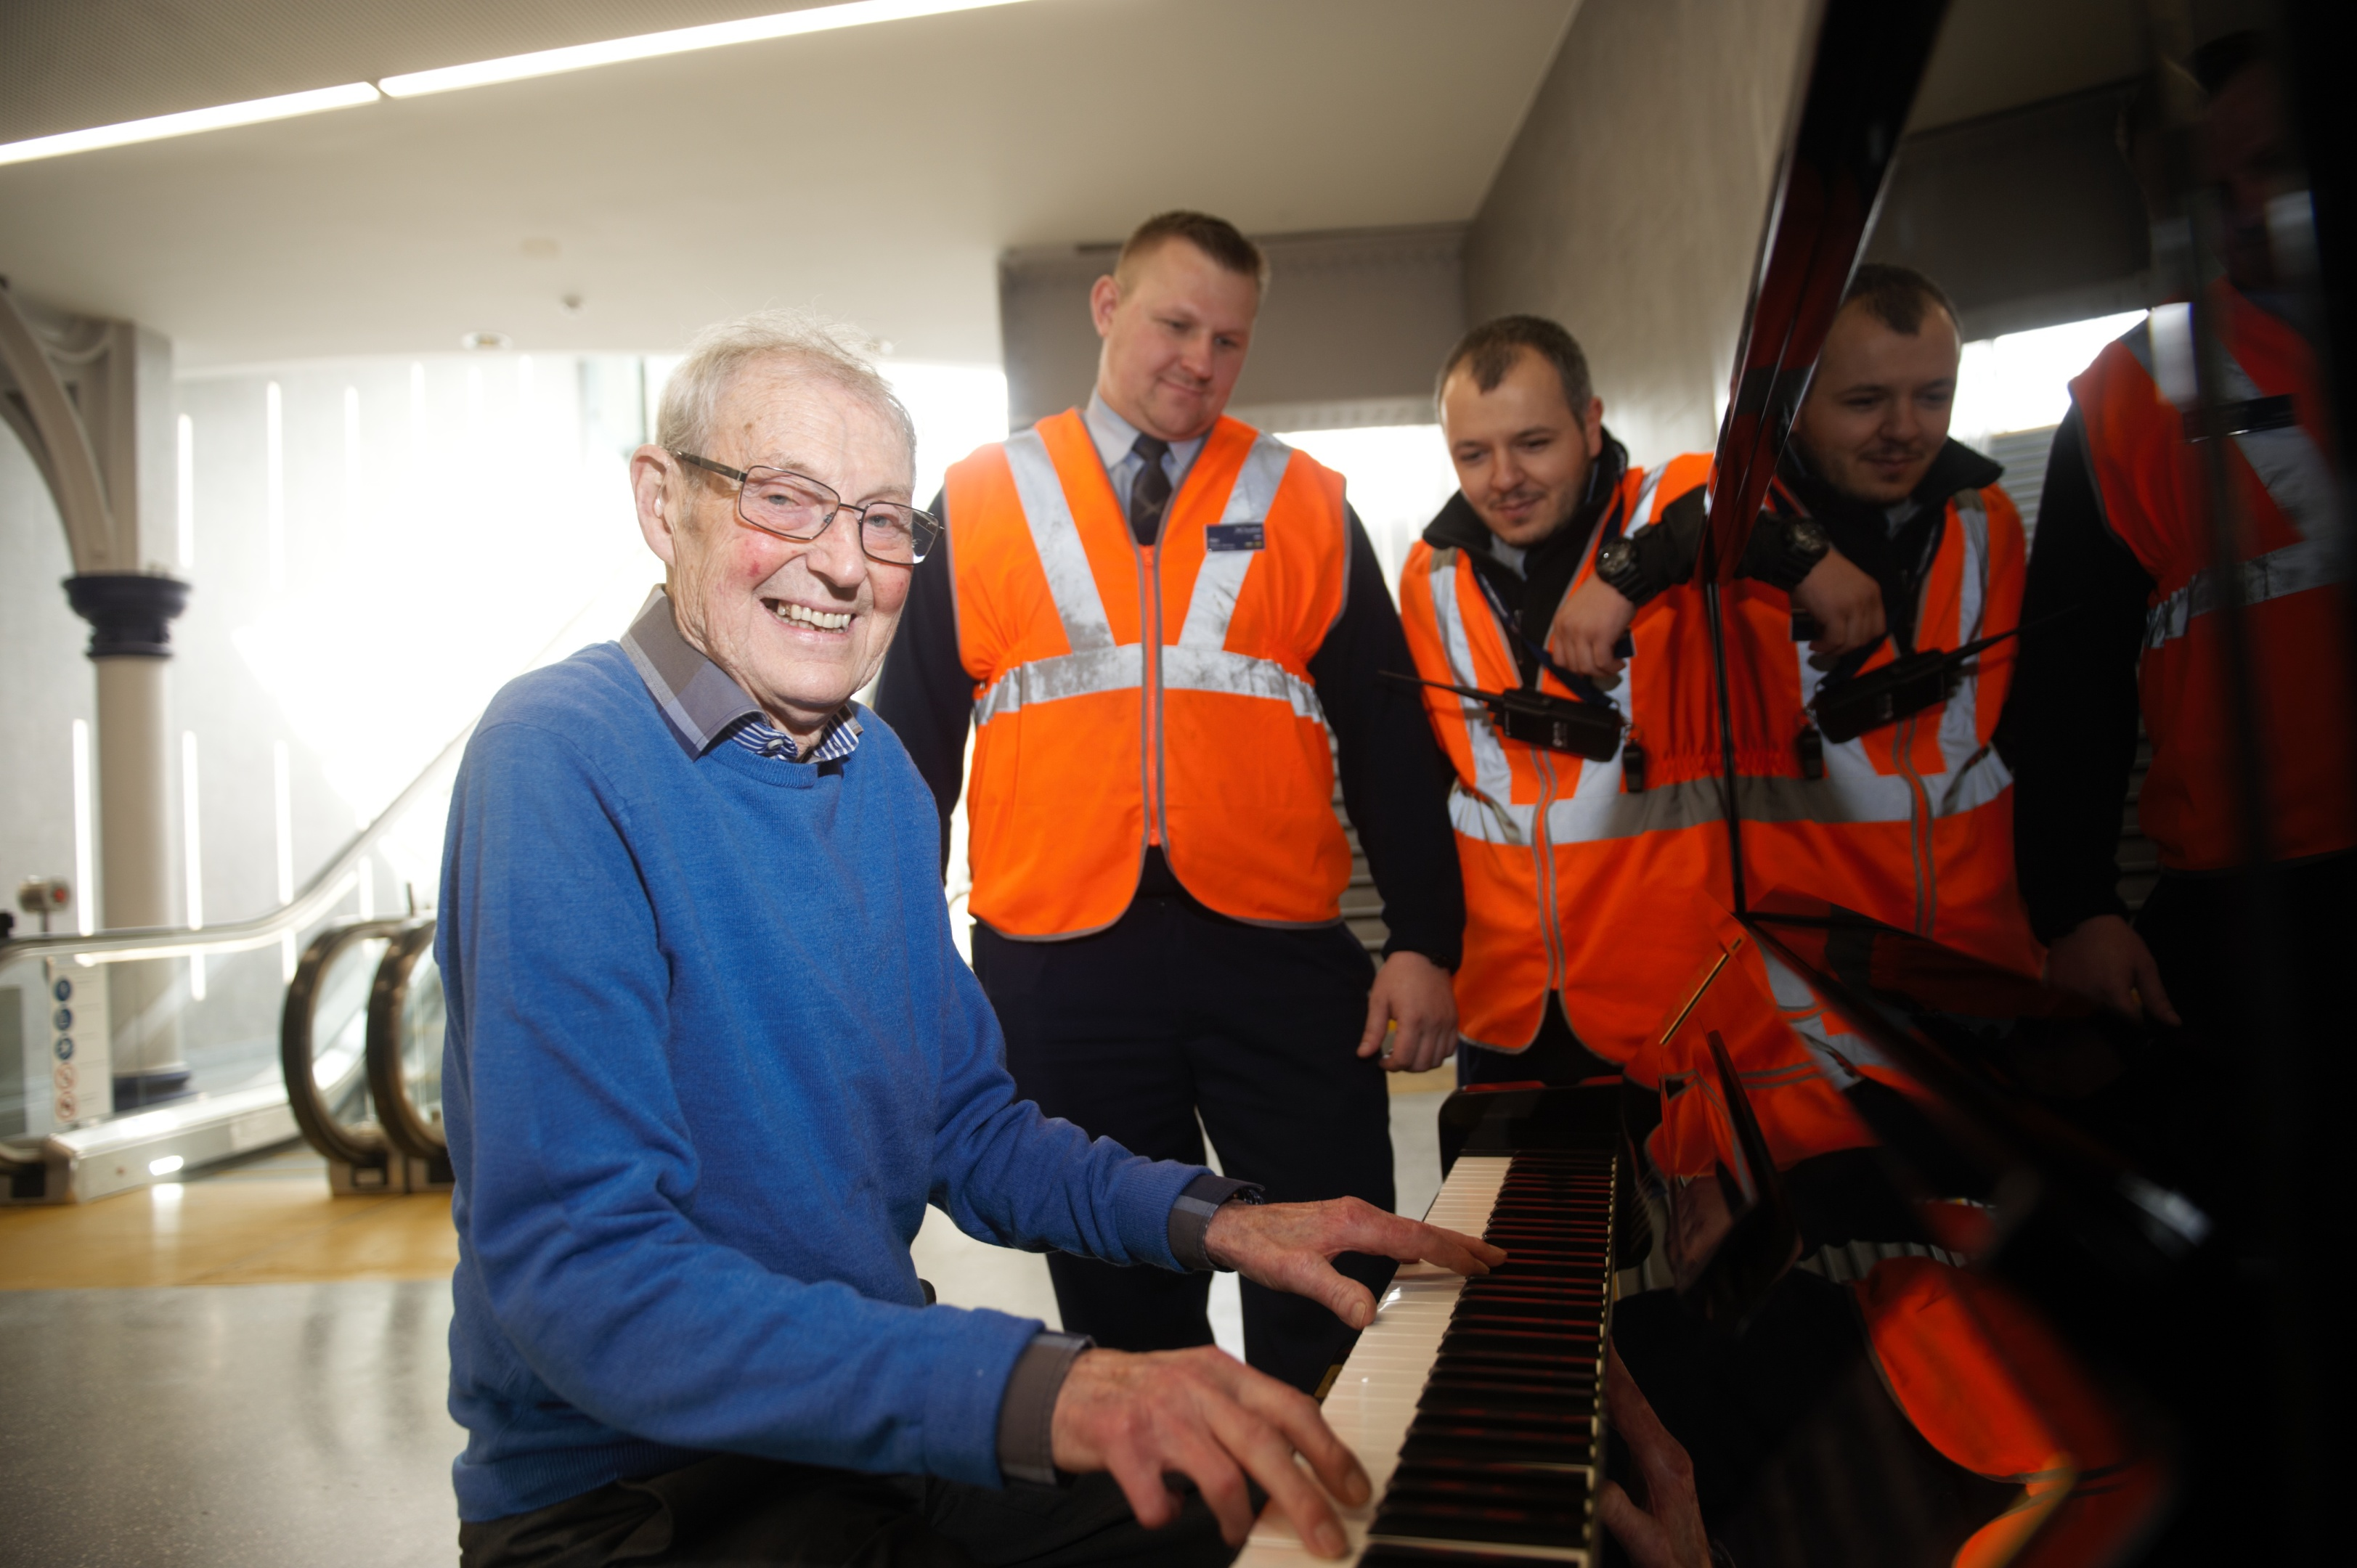 David Patterson plays the new 'People's Piano' at Dundee station